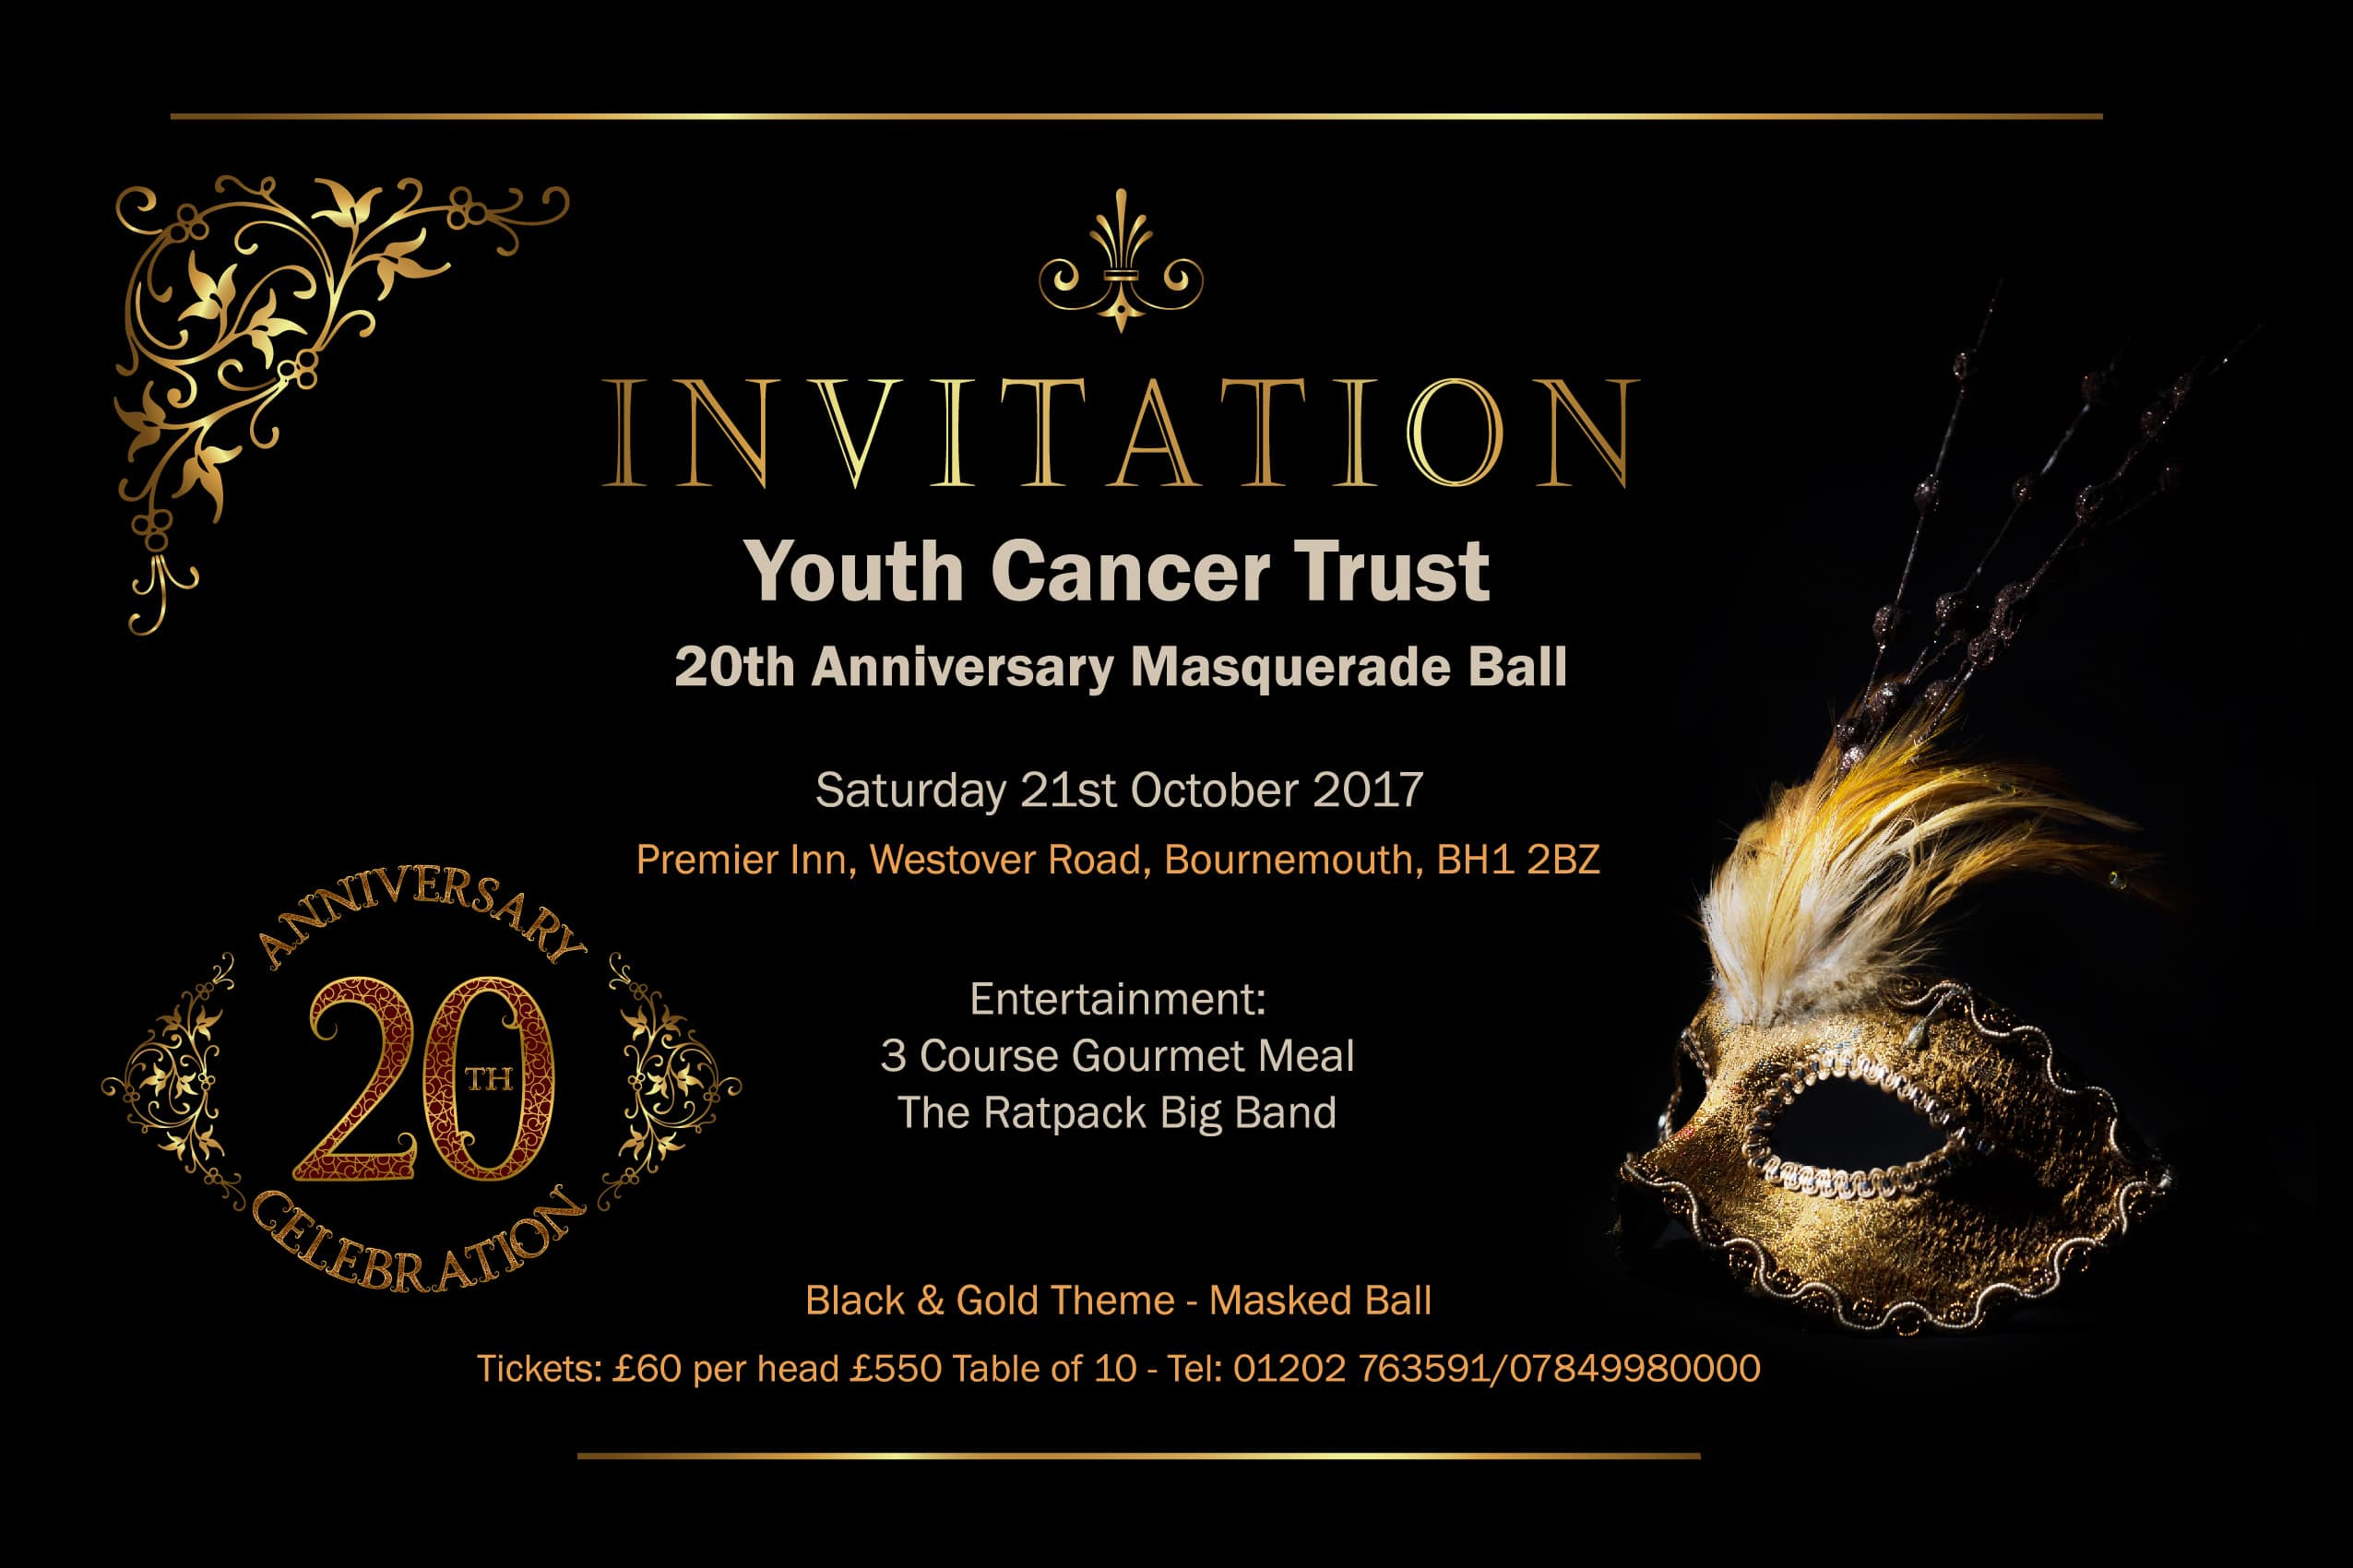 Masquerade Ball To Celebrate 20 Years Of The Youth Cancer Trust